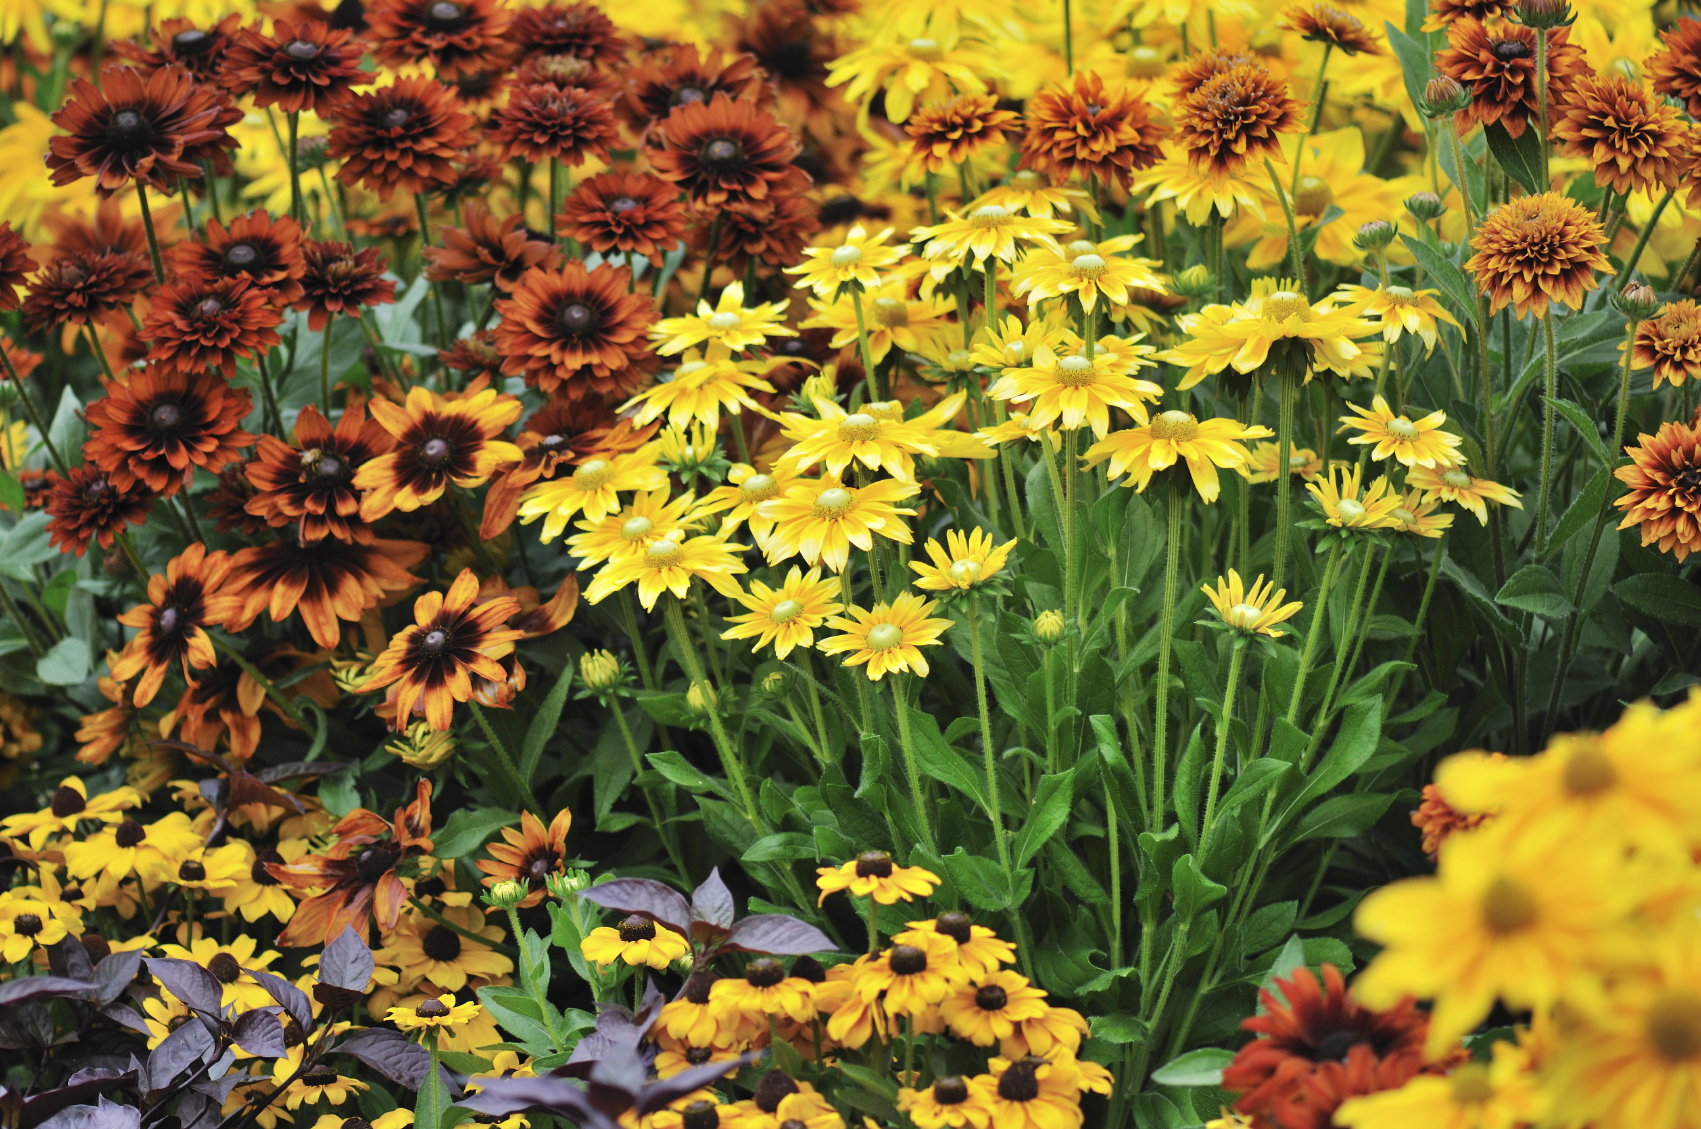 Bucks country gardens fall interest perennials for the garden izmirmasajfo